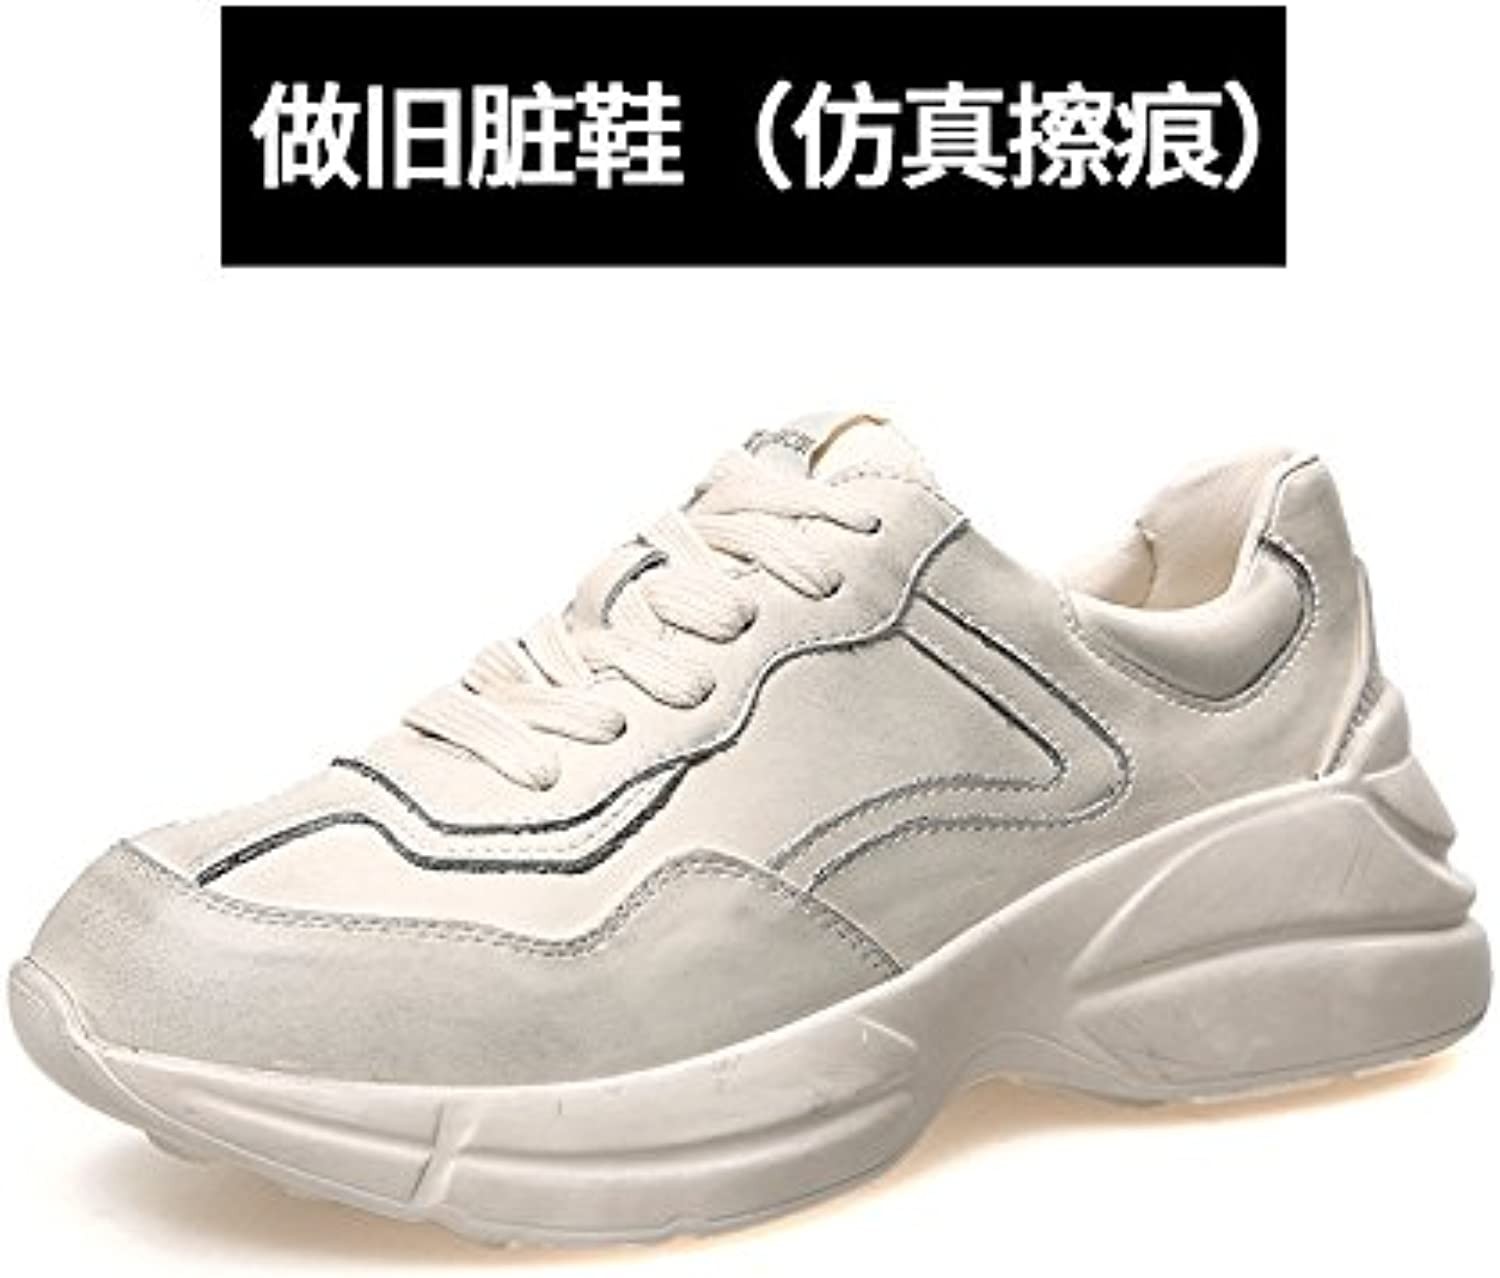 QQWWEERRTT Zapatos Blancos de Moda Zapatos de Mujer New Thick Bottom High End Vintage Sneakers Do Old Dirty Shoes... -